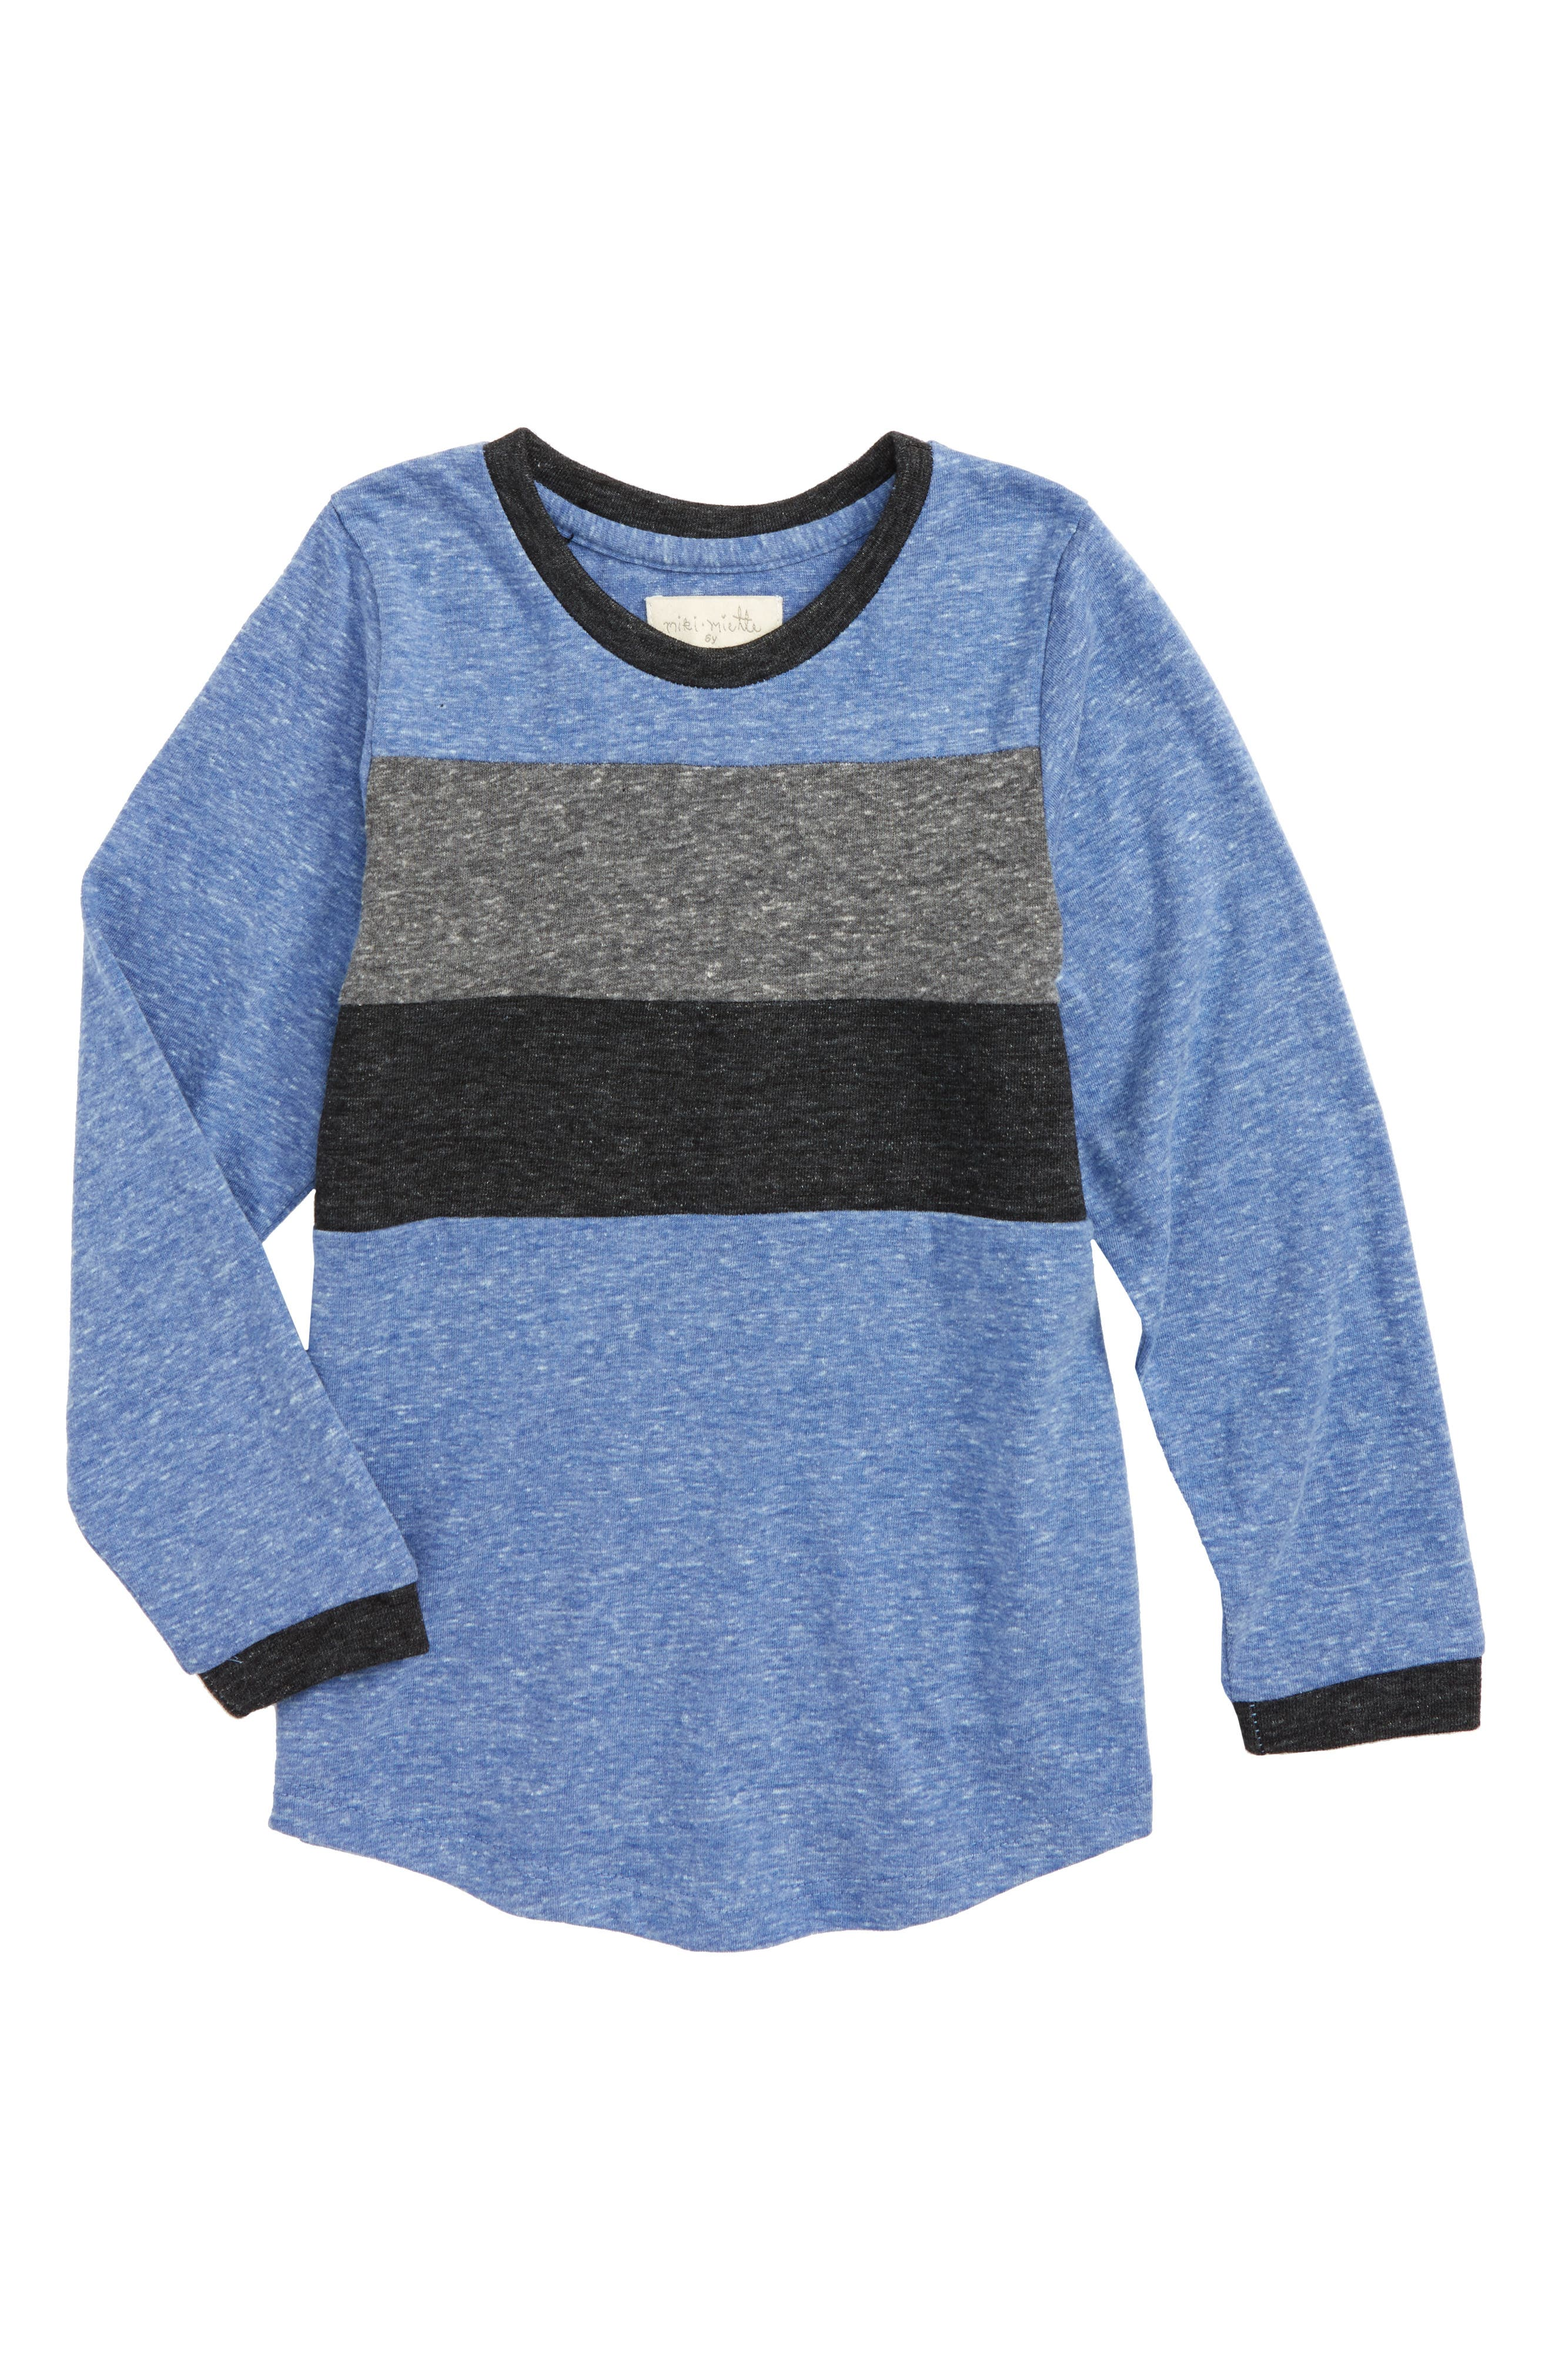 Main Image - Miki Miette Dax T-Shirt (Toddler Boys, Little Boys & Big Boys)